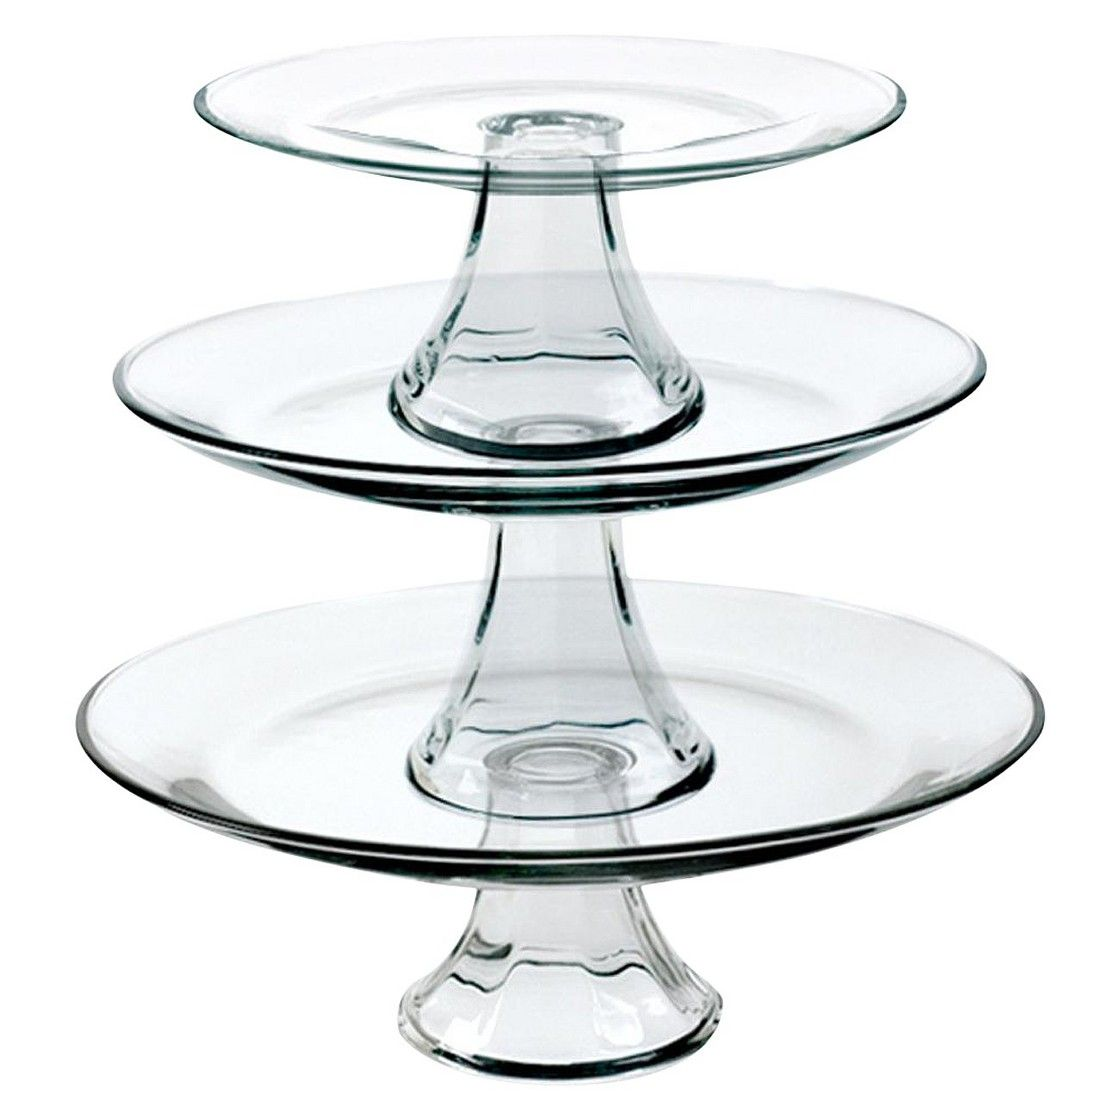 Tiered Pedestal Serving Plates Set Of 3 Tiered Serving Platters Tiered Stand Glass Cakes